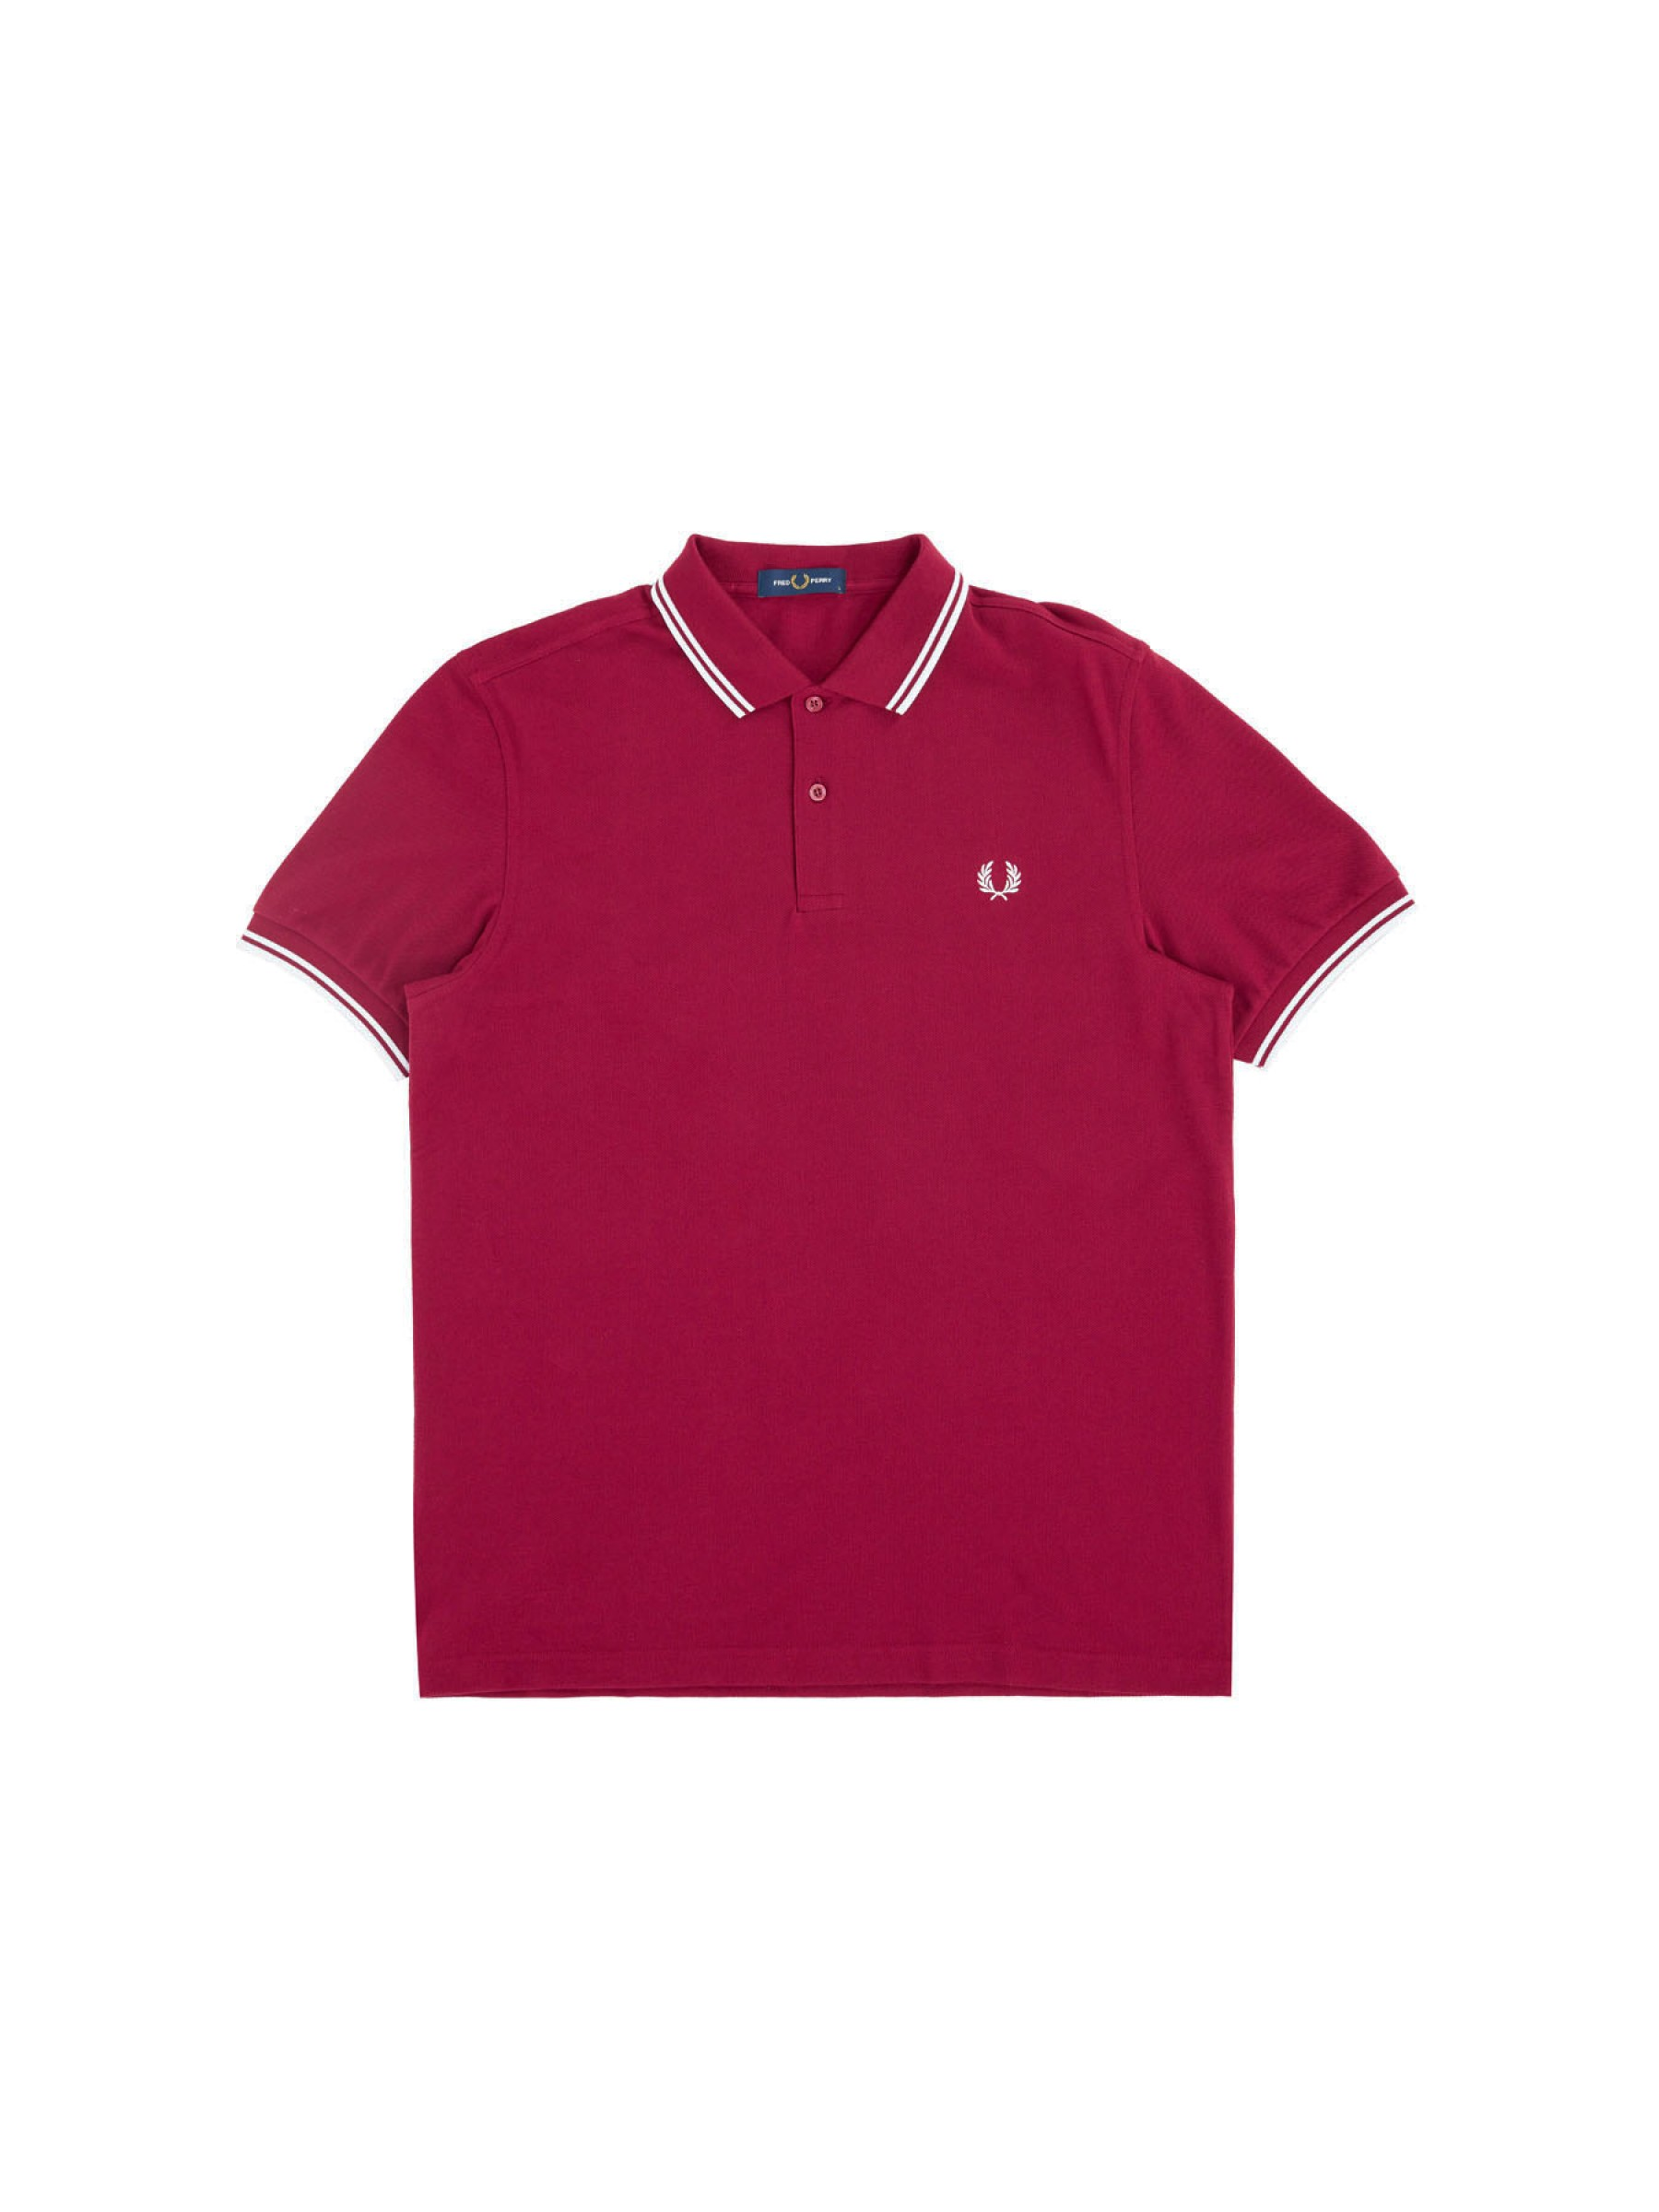 M3600-122 - Fred Perry - P20